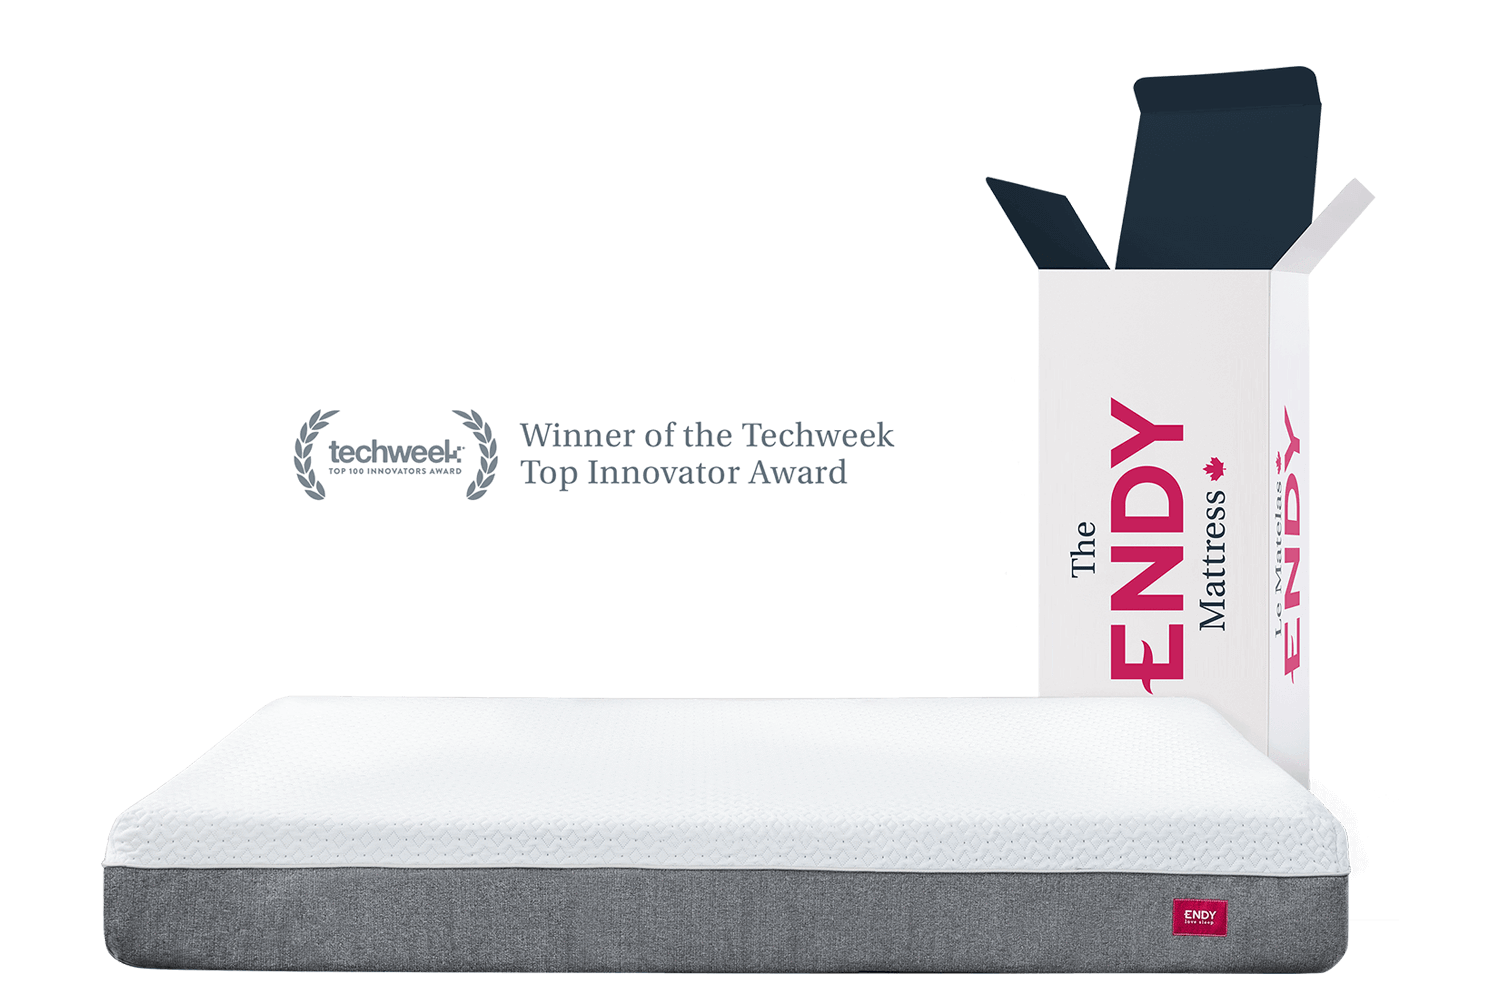 Endy Mattresses 100 Canadian Made And Sourced With A 100 Night Trial Free Shipping Free Returns How Can You Go W Mattress Endy Online Mattress